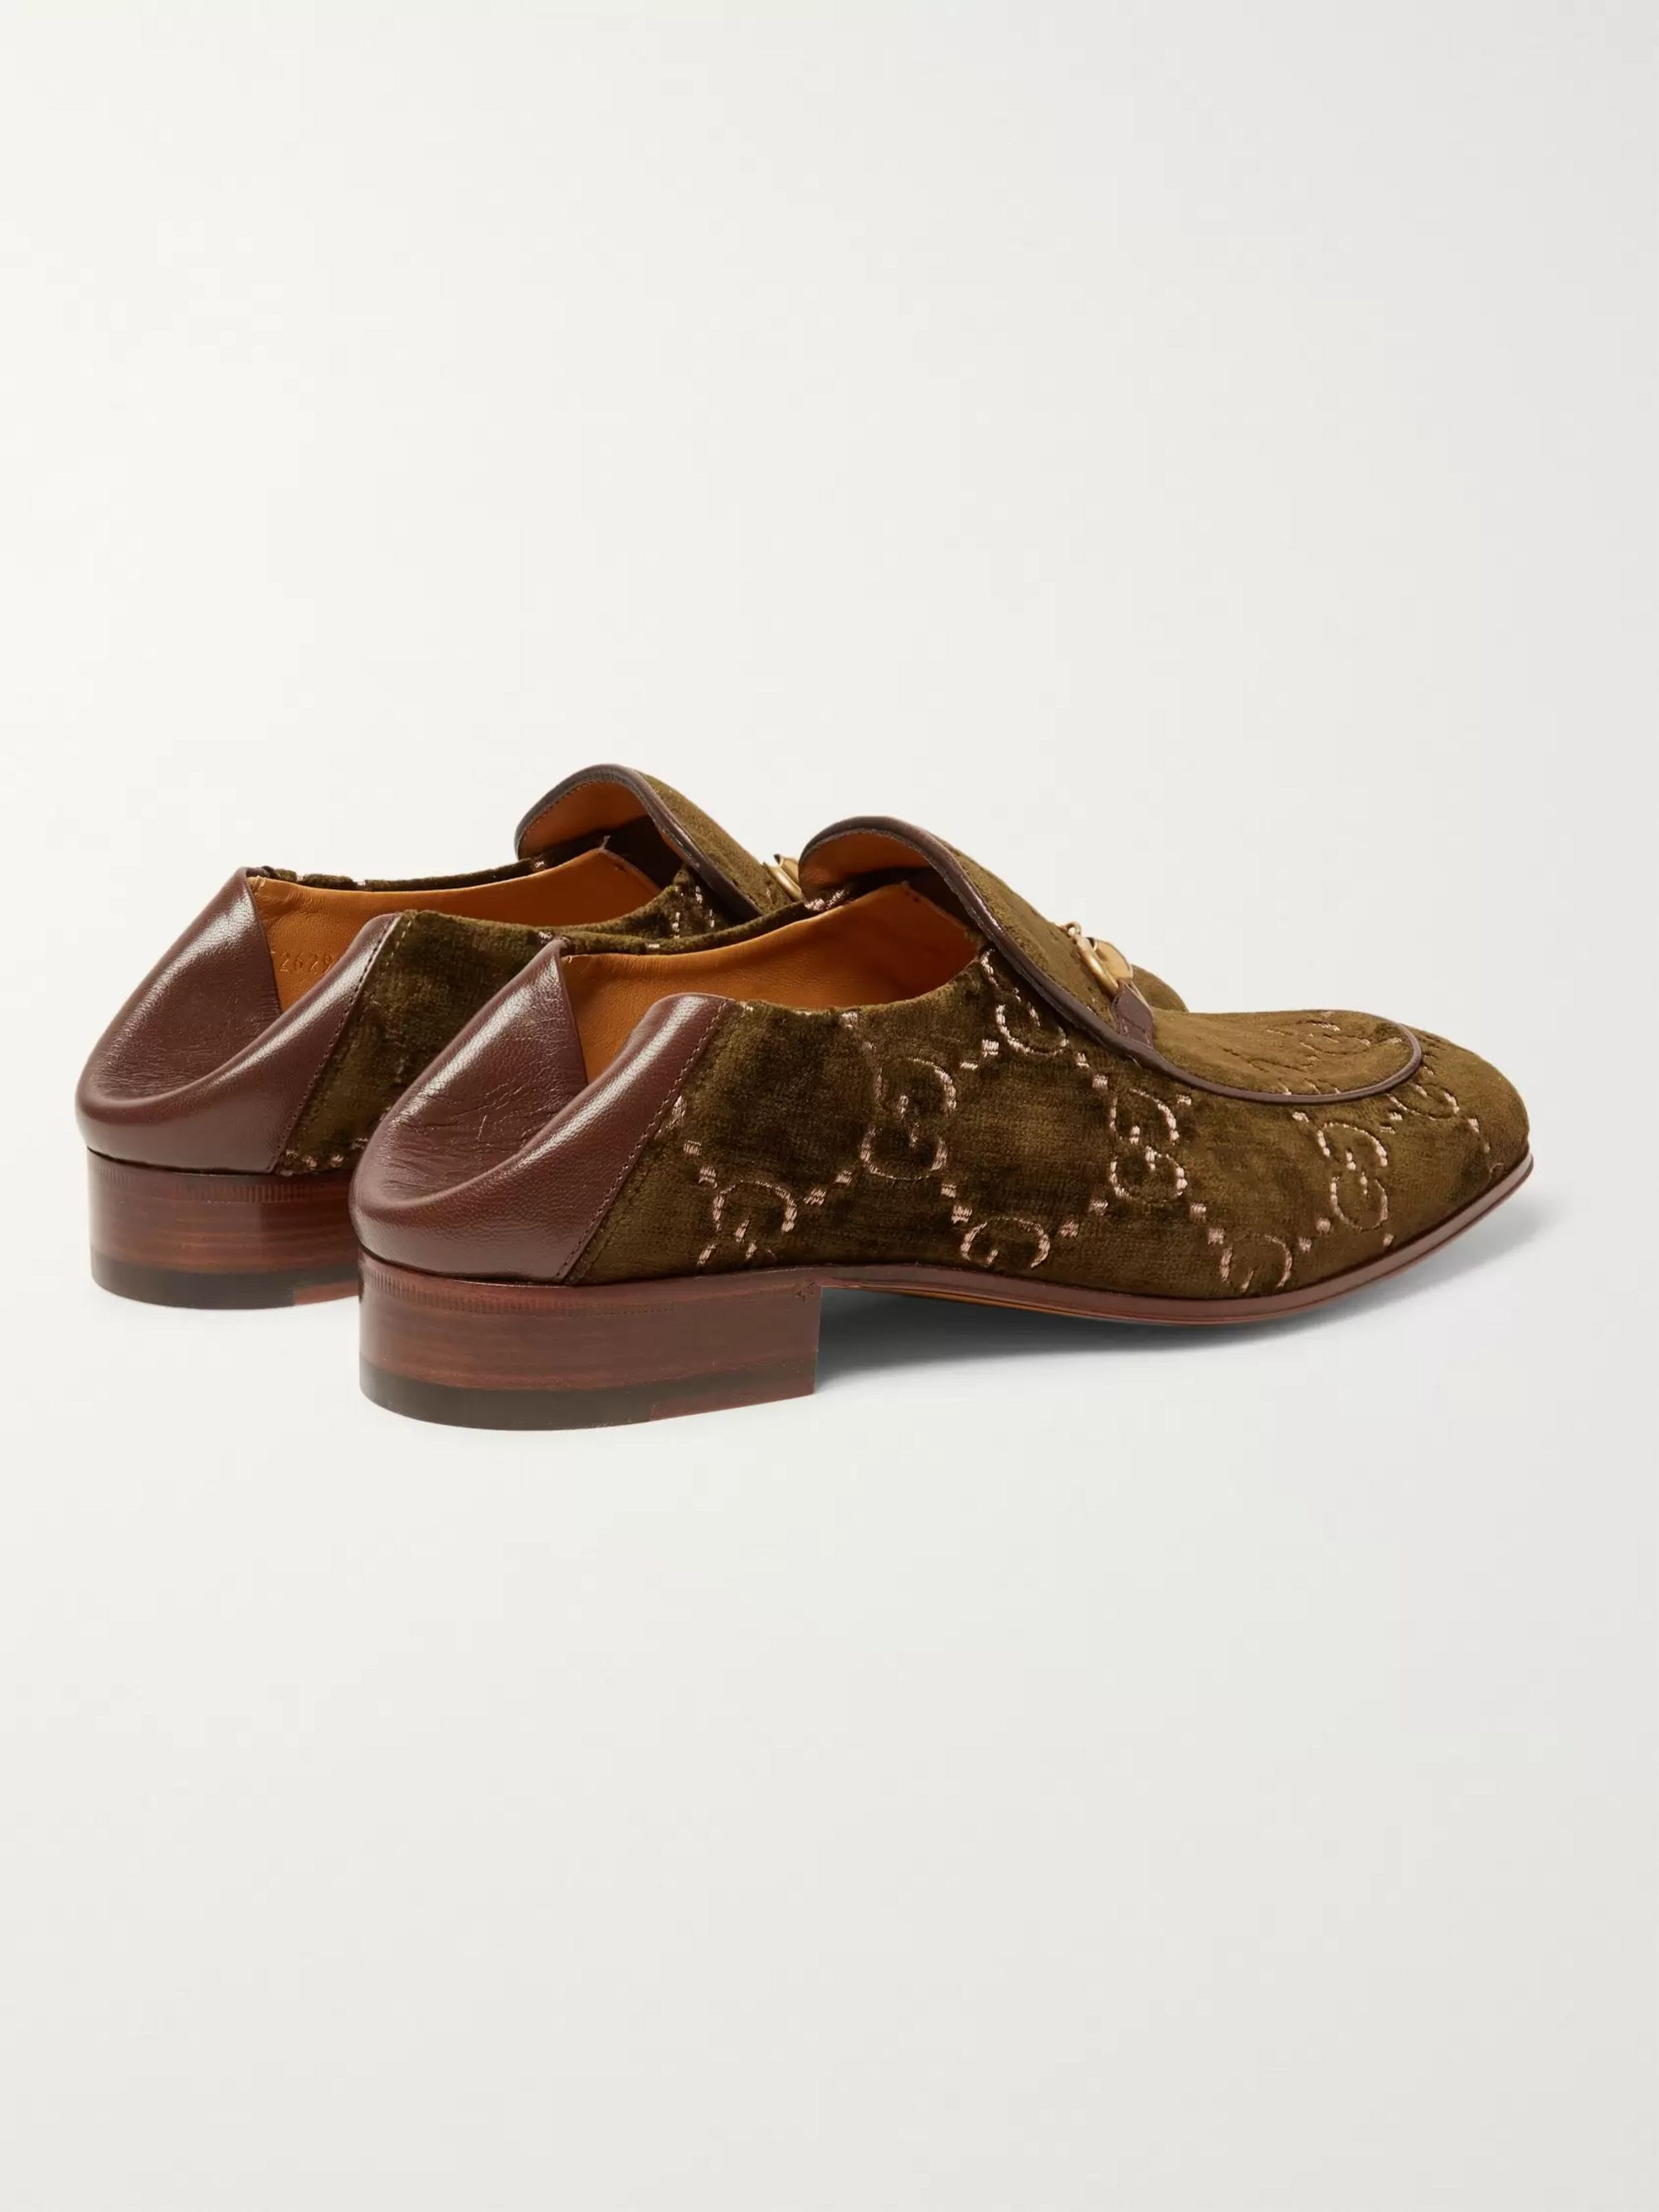 Gucci Horsebit Collapsible-Heel Leather-Trimmed Embroidered Velvet Loafers